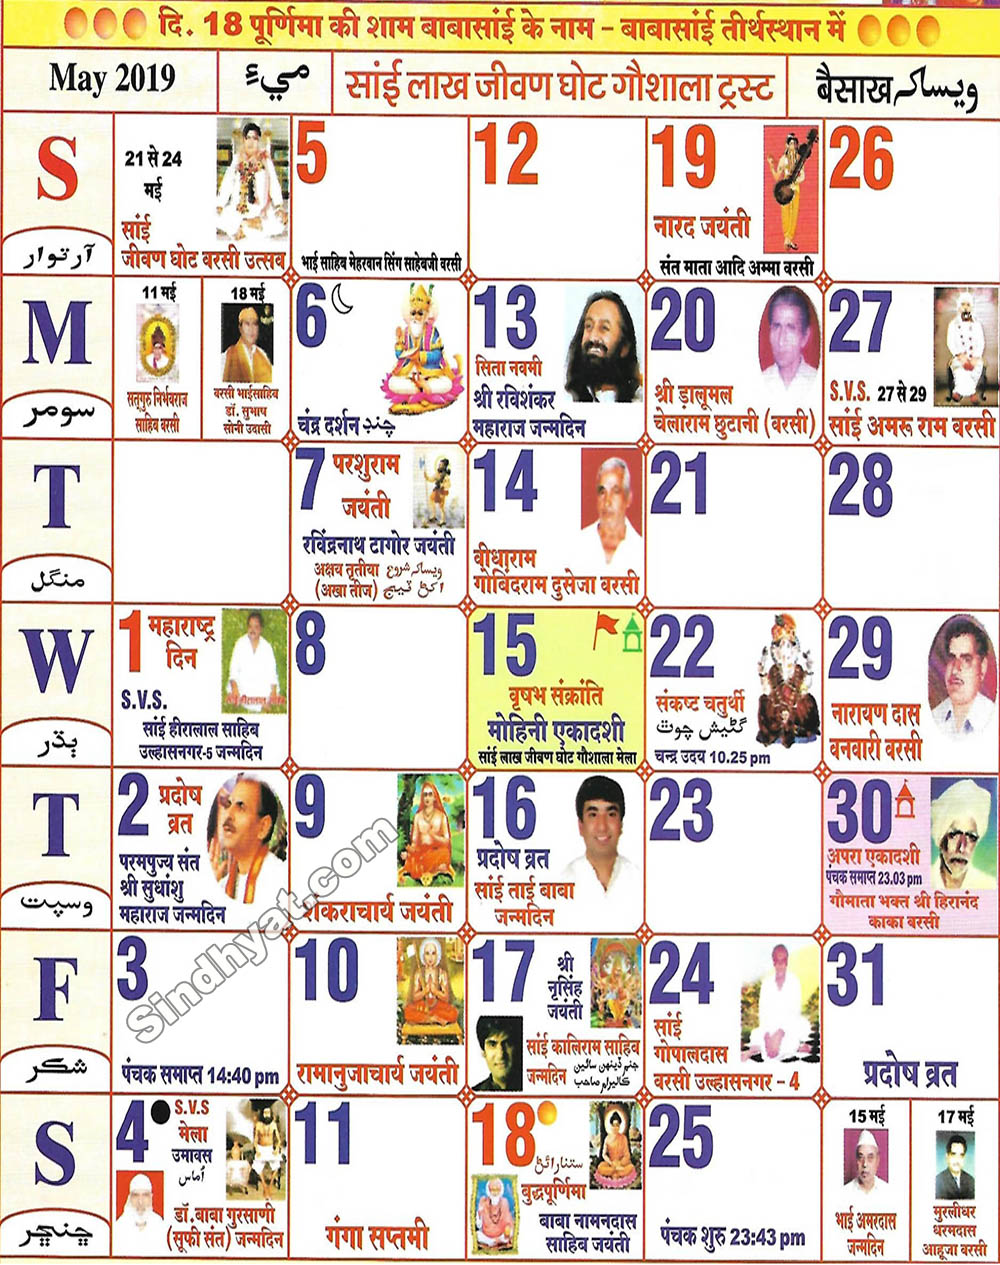 Sindhi Calendar for the month of May, 2019